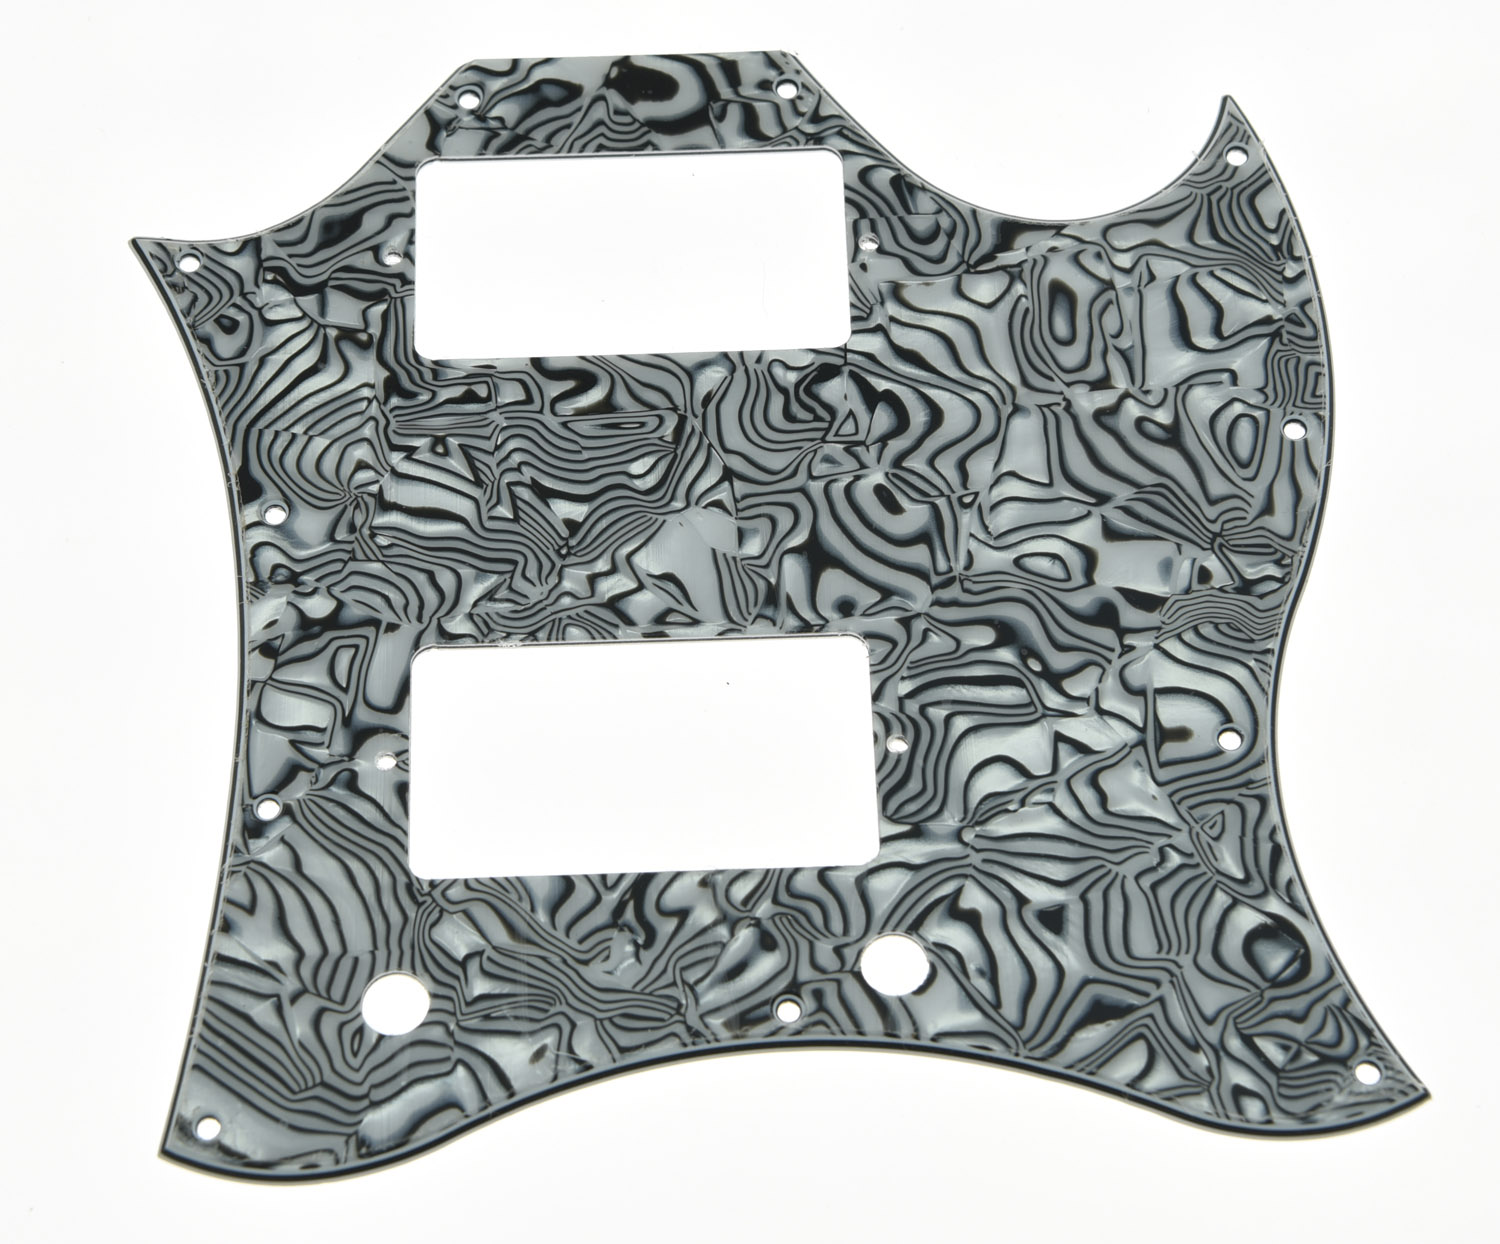 SG Standard Full Face Guitar Pickguard Scratch Plate Zebra Stripe with Screws standard sg full face pickguard for sg special guitar various colors